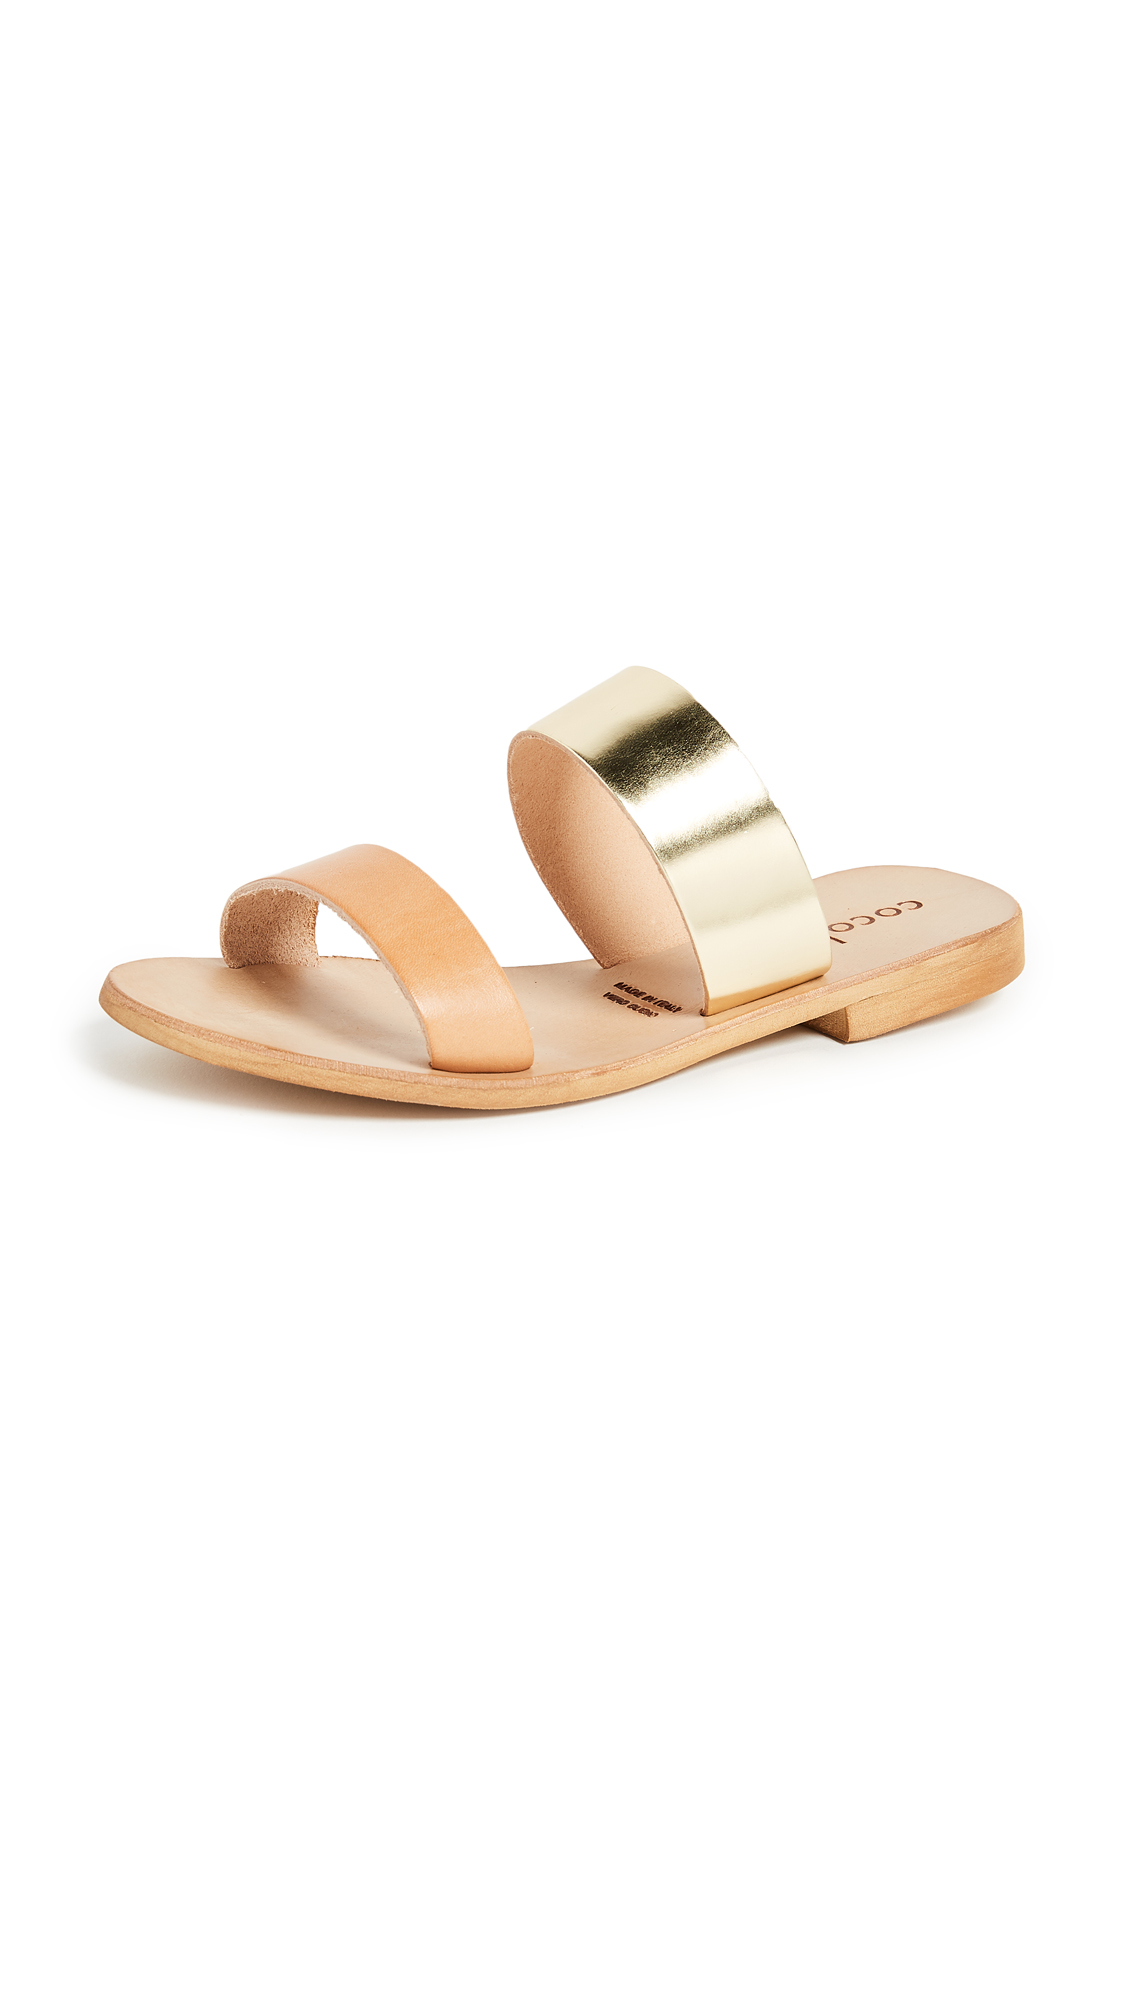 Cocobelle Leather Slide Sandals - Natural